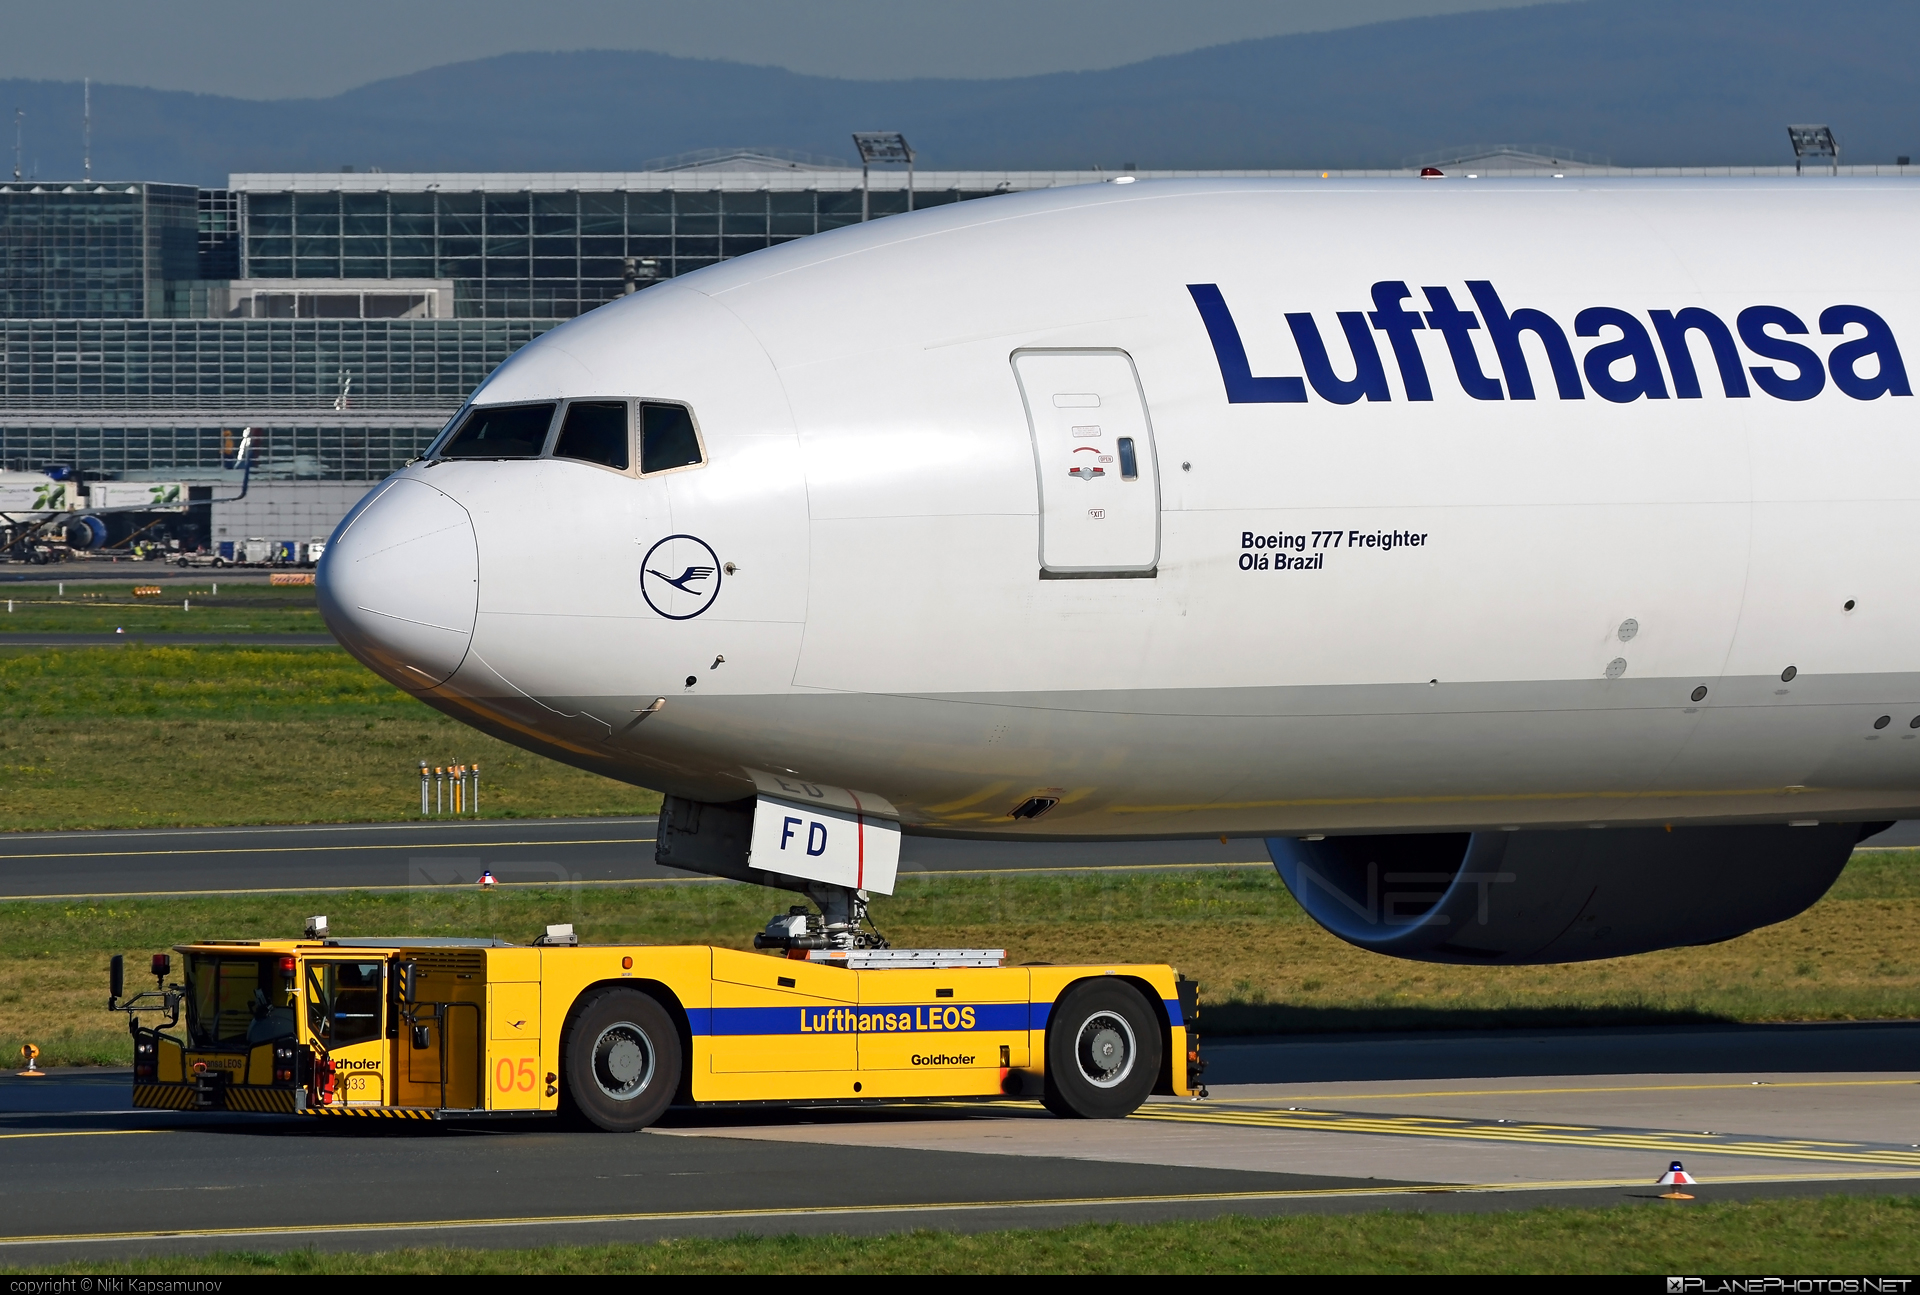 Boeing 777F - D-ALFD operated by Lufthansa Cargo #b777 #b777f #b777freighter #boeing #boeing777 #lufthansa #lufthansacargo #tripleseven